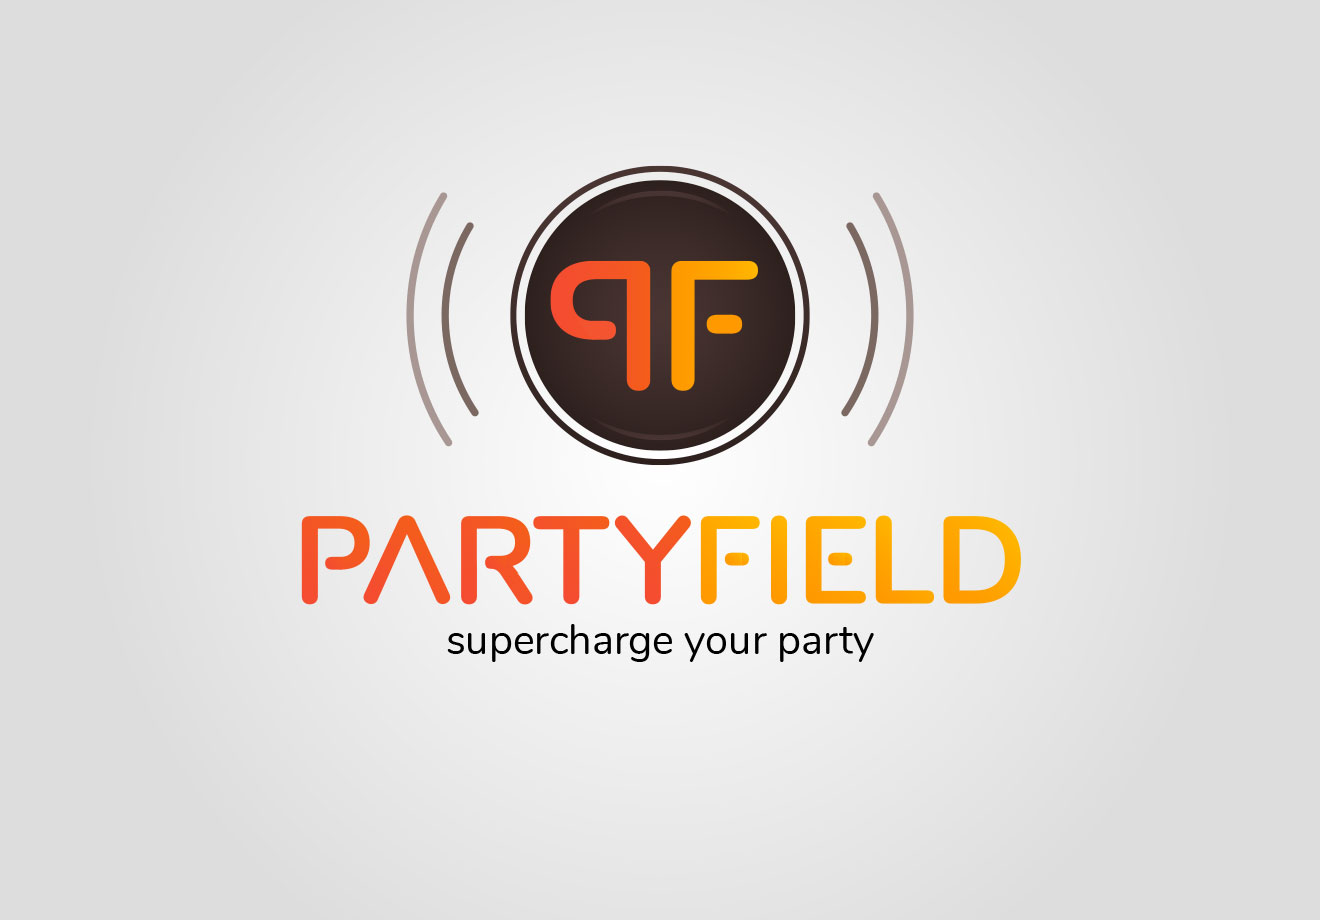 project-partyfield-image_2